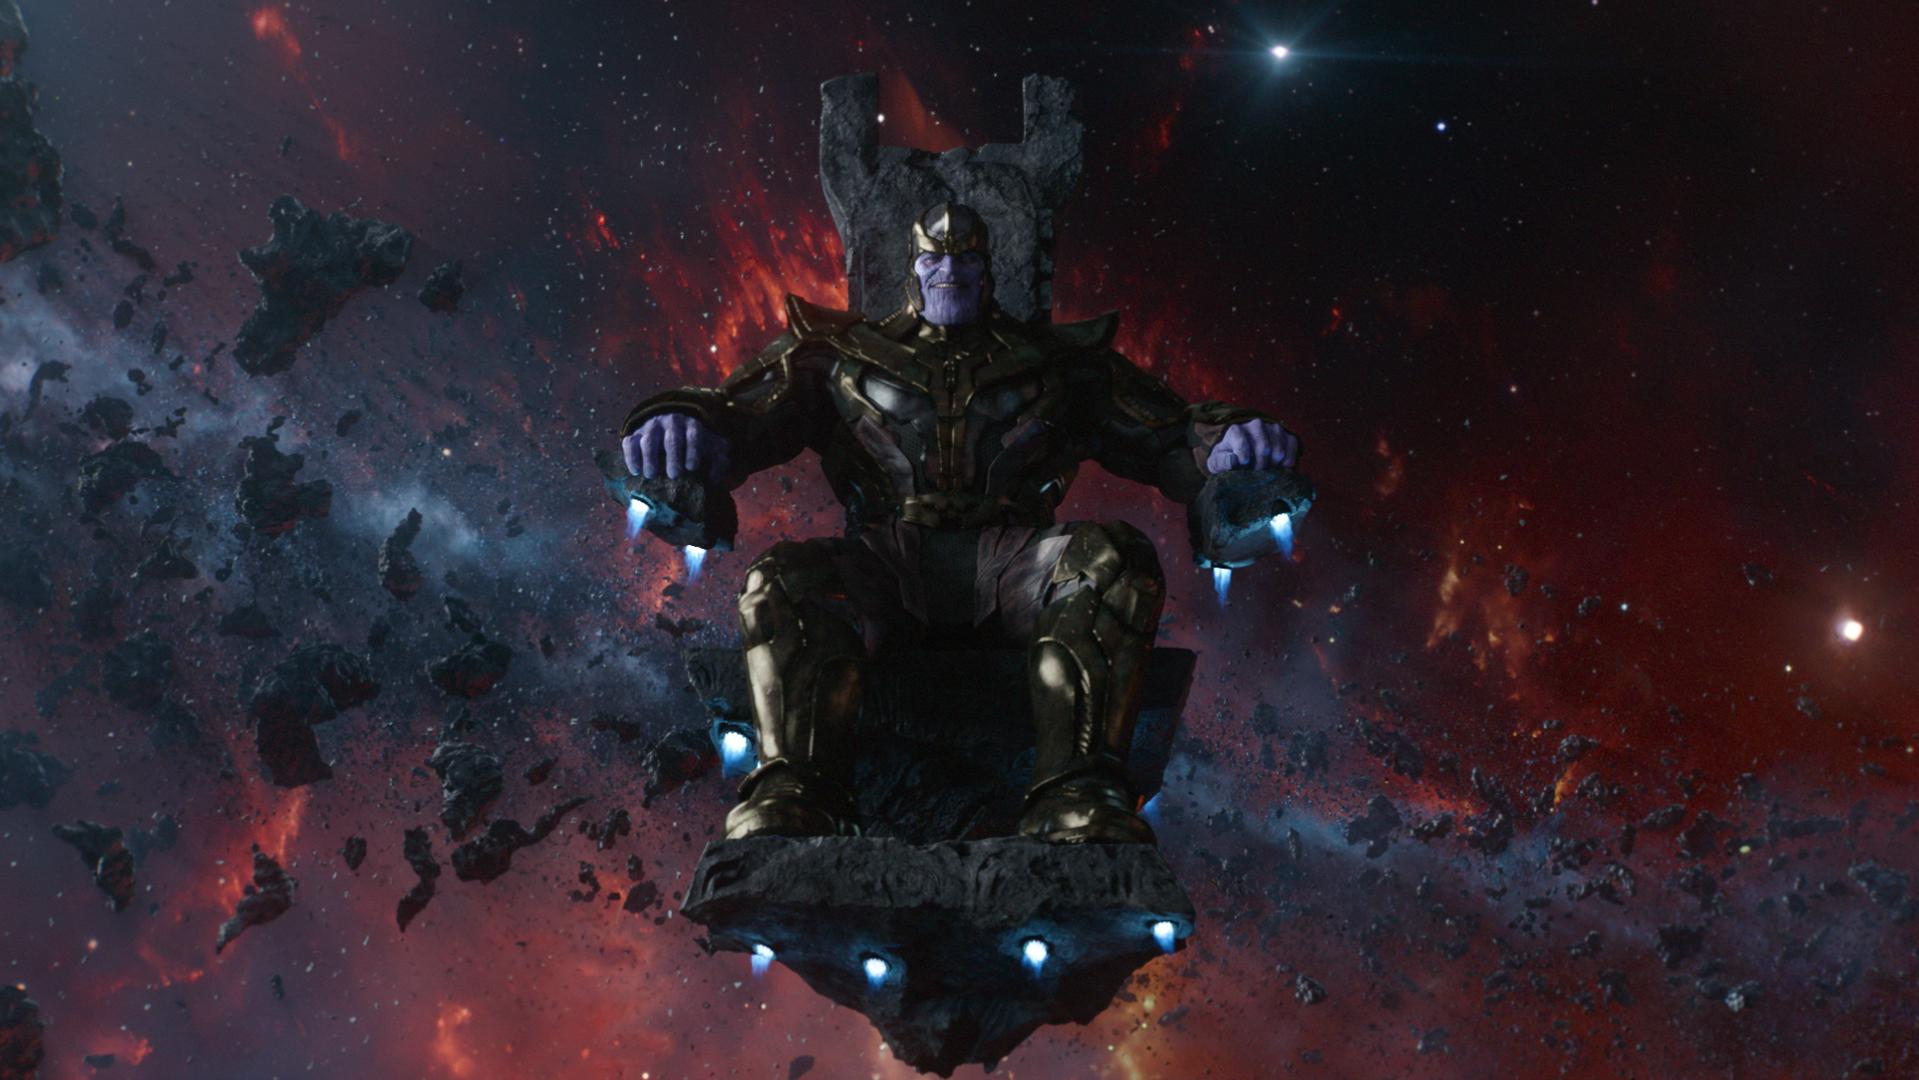 Where are the Infinity Stones and who is Thanos? What you need to know before Avengers: Infinity War